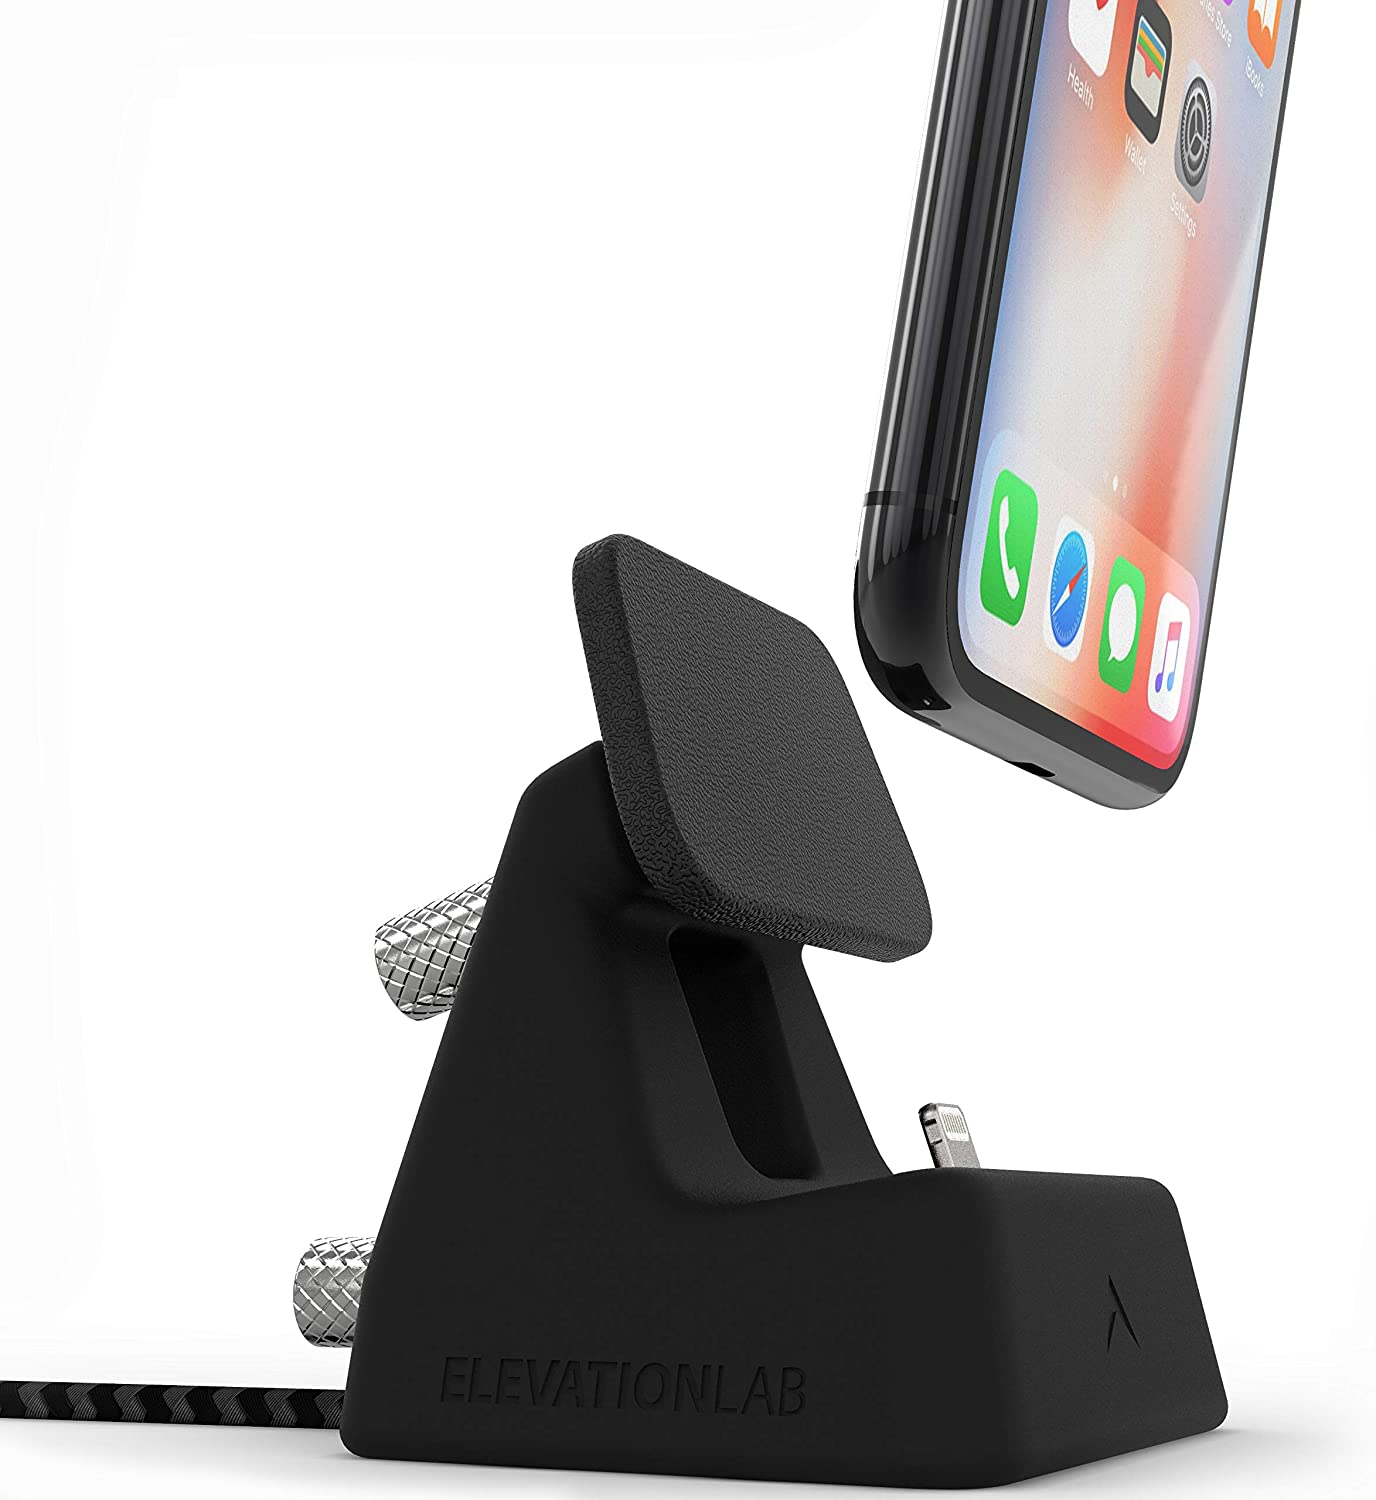 Elevation Lab ElevationDock 4 MFi Apple iPhone Dock with One-Hand Undocking - Chrome/Black